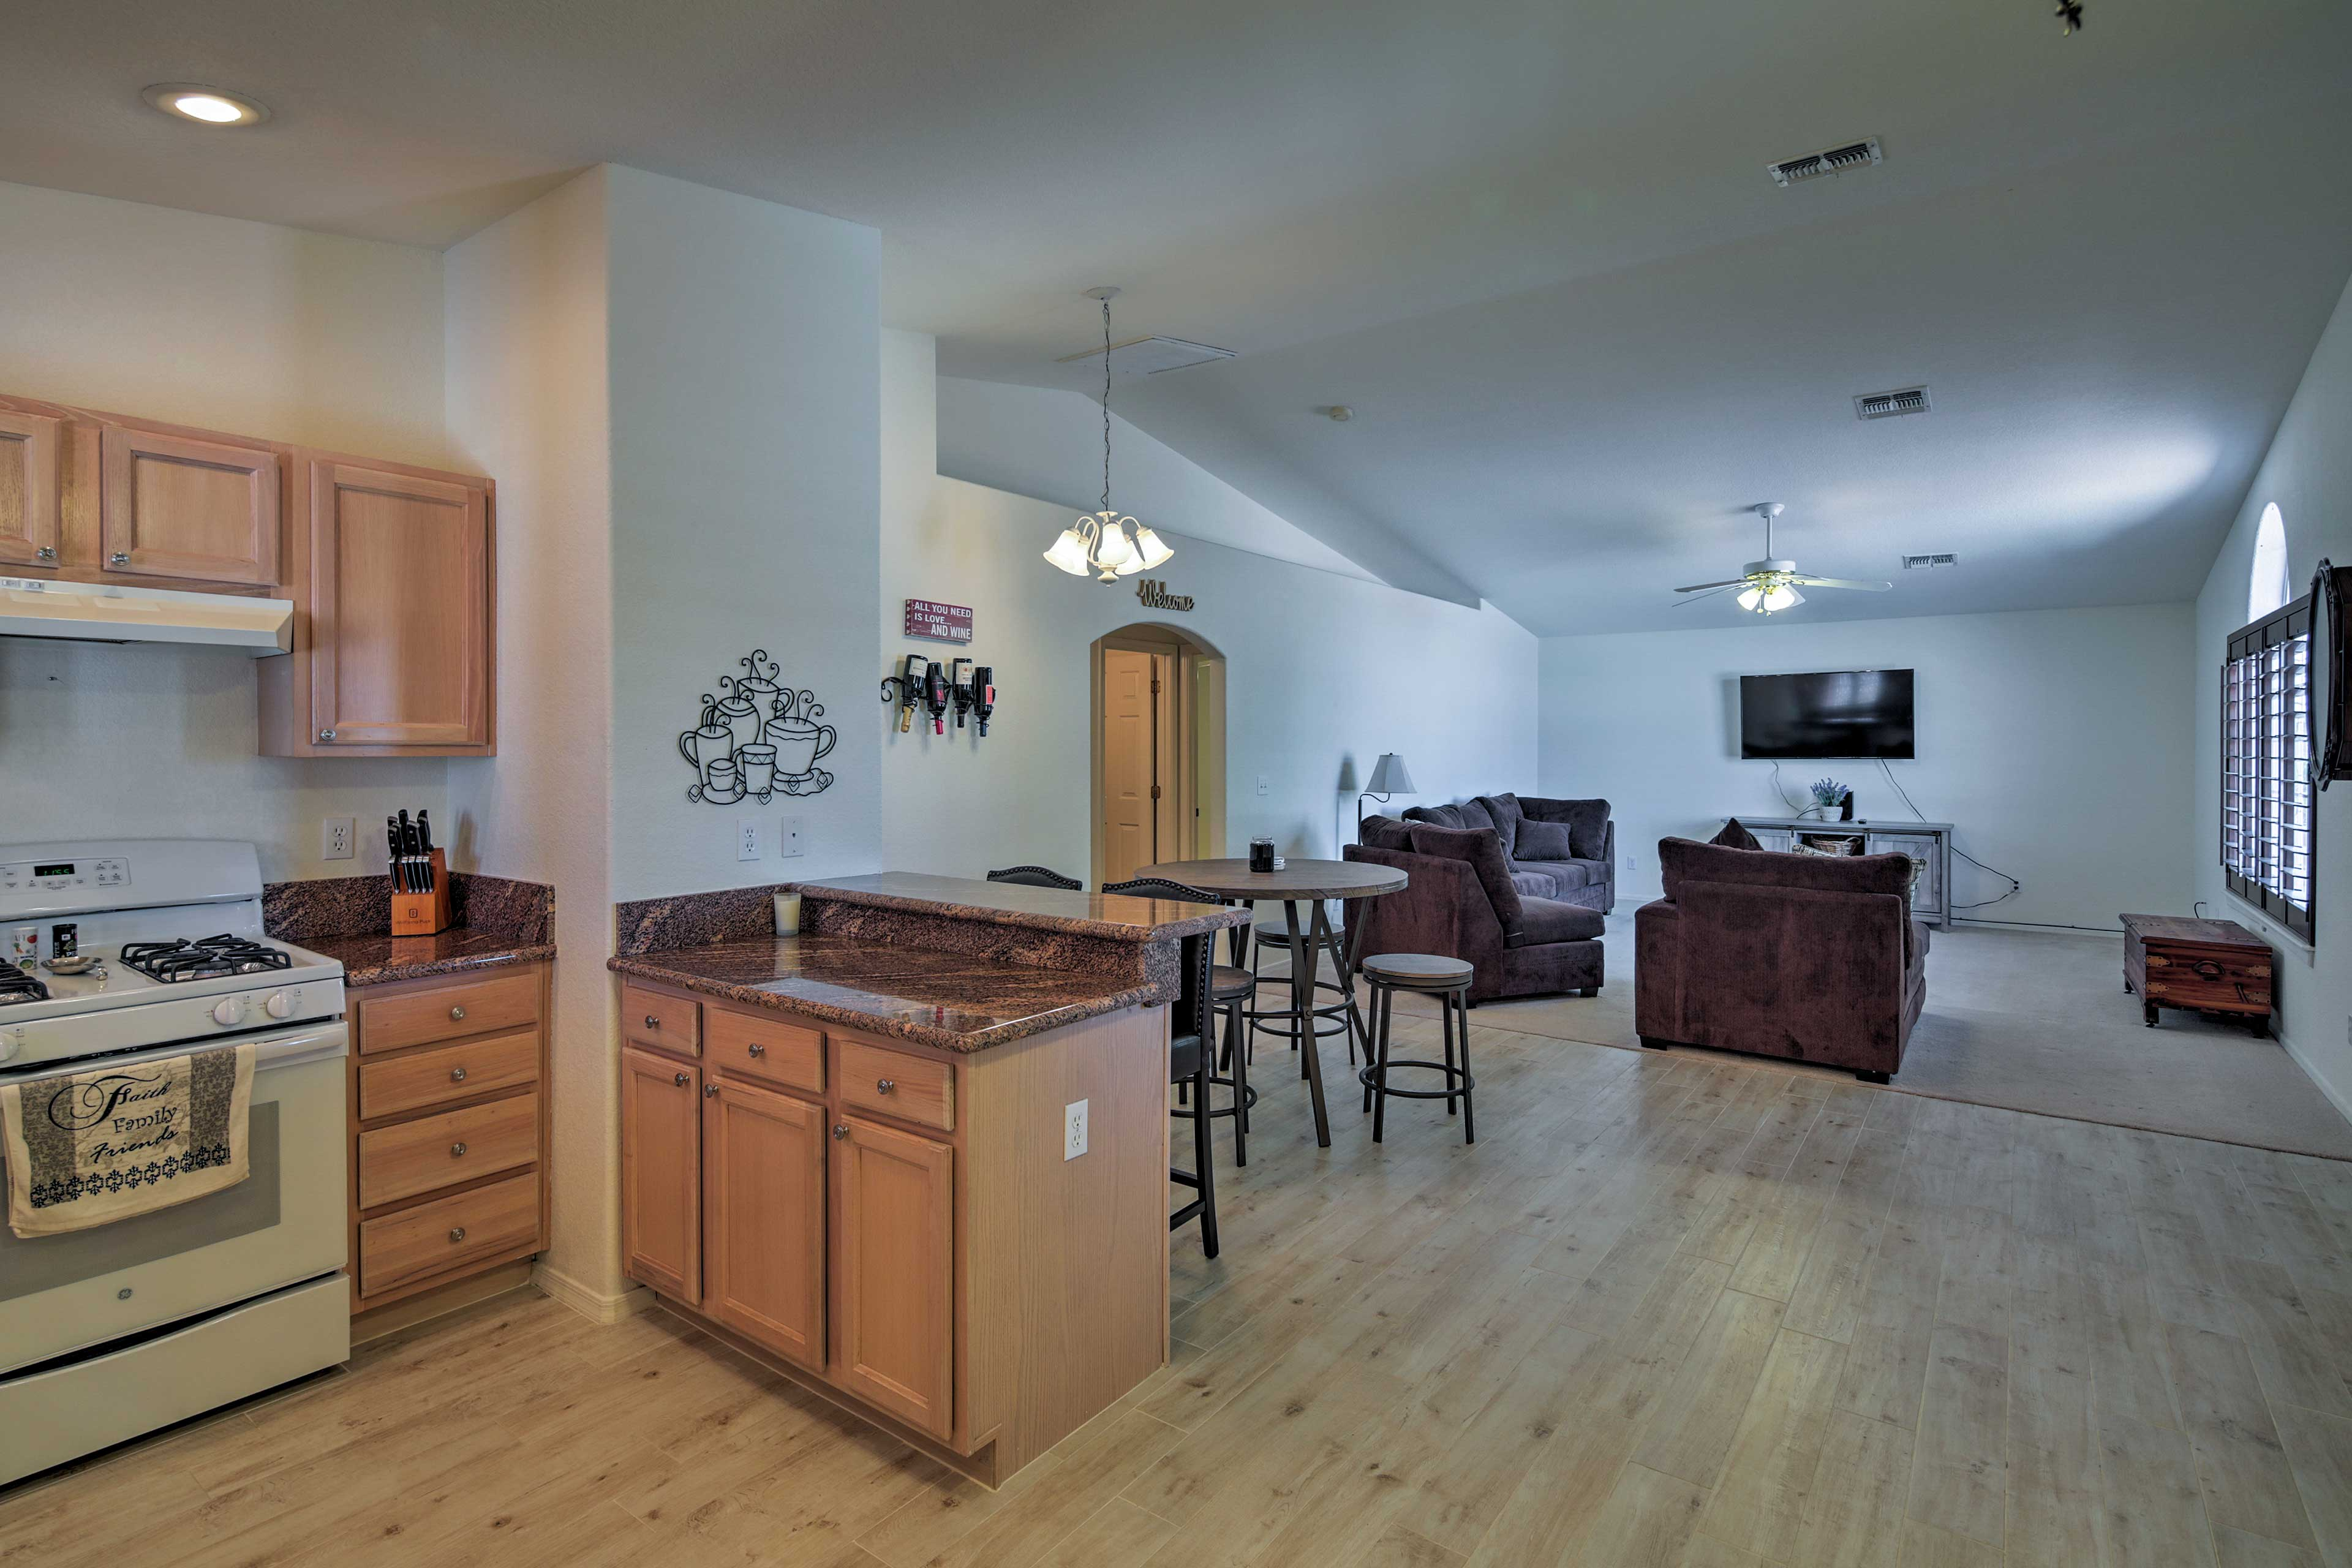 The fully equipped kitchen sits just steps from the living room.